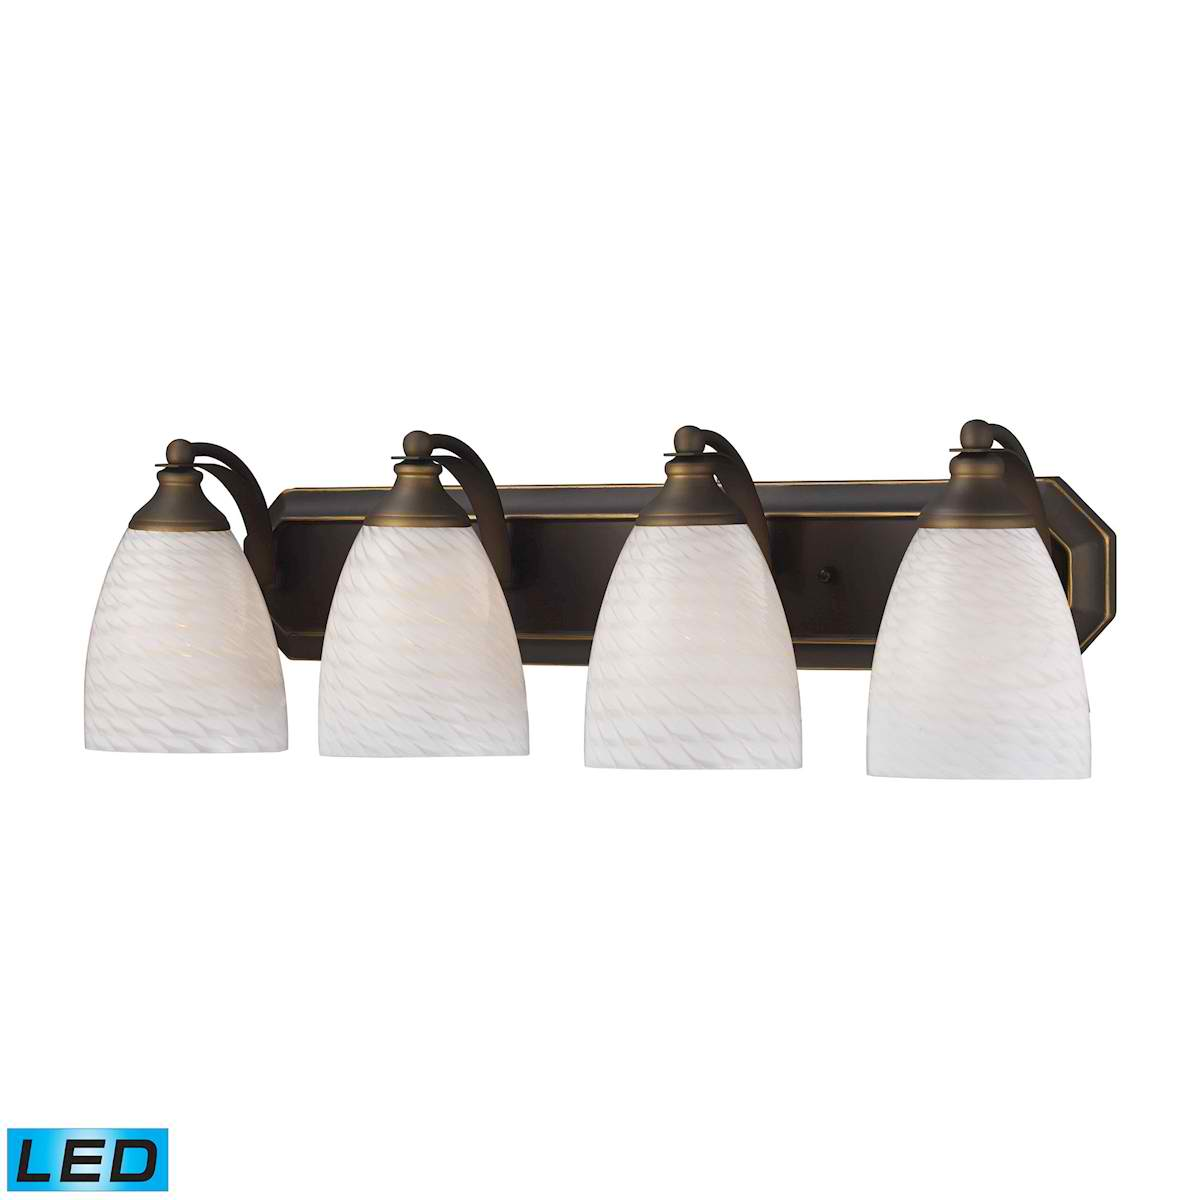 4 Light Vanity in Aged Bronze and White Swirl Glass - LED, 800 Lumens (3200 Lumens Total) with Full Scale